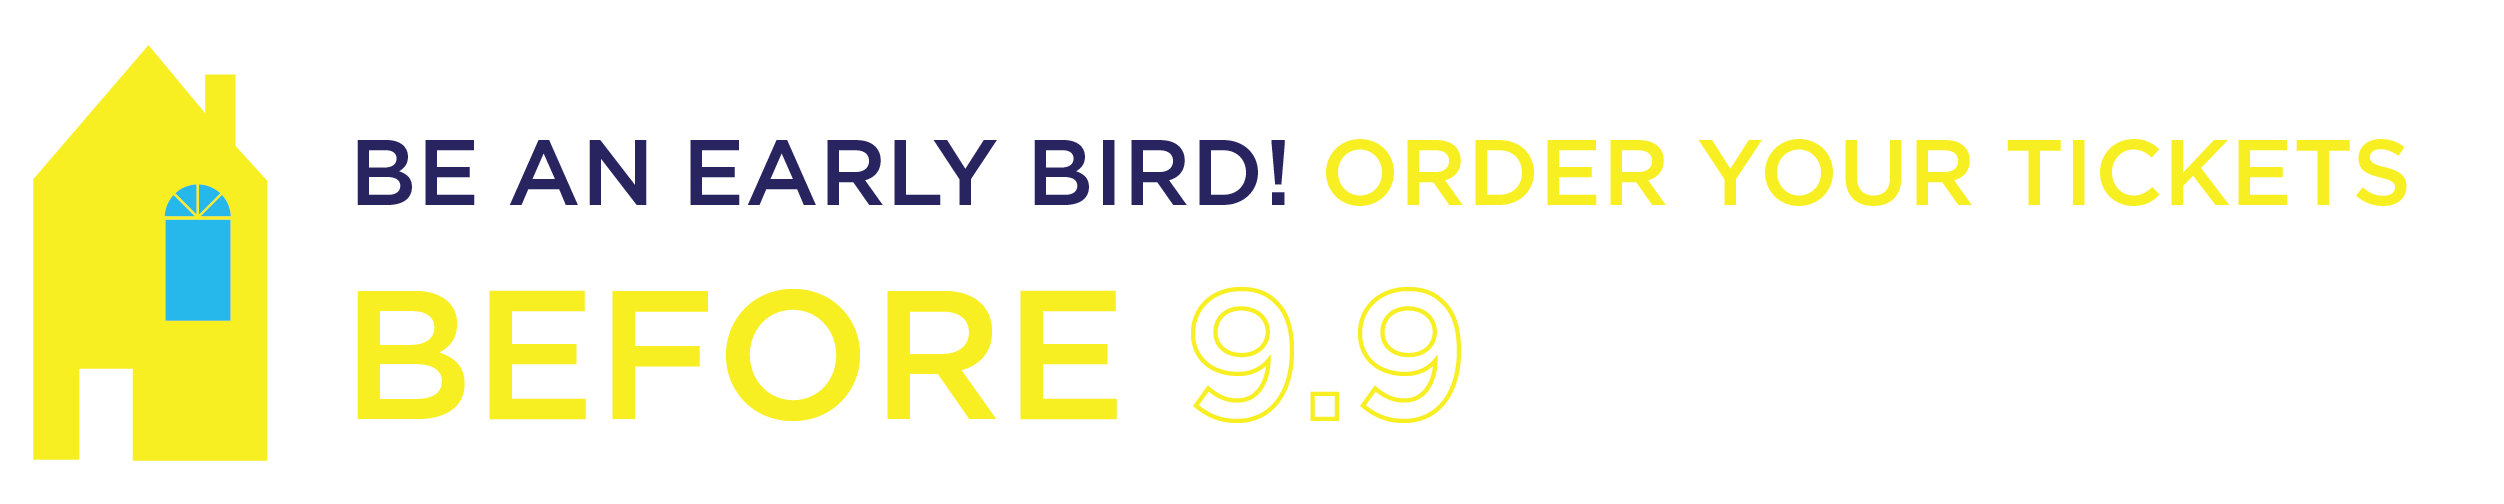 Be an Early Bird! Order your tickets before 9/9!